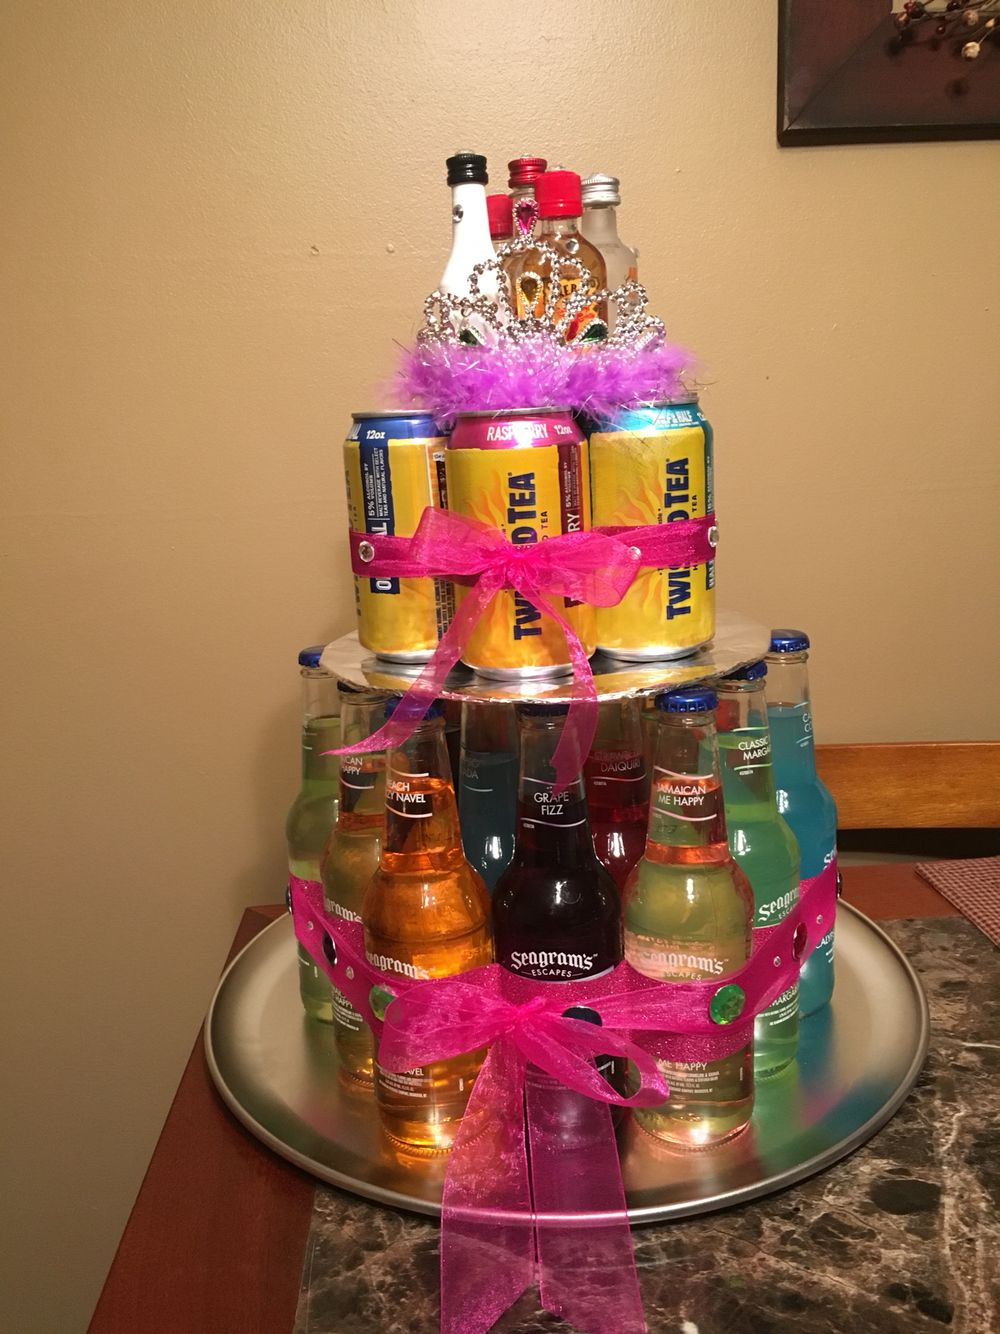 Seagrams & twisted tea cake made for a perfect birthday